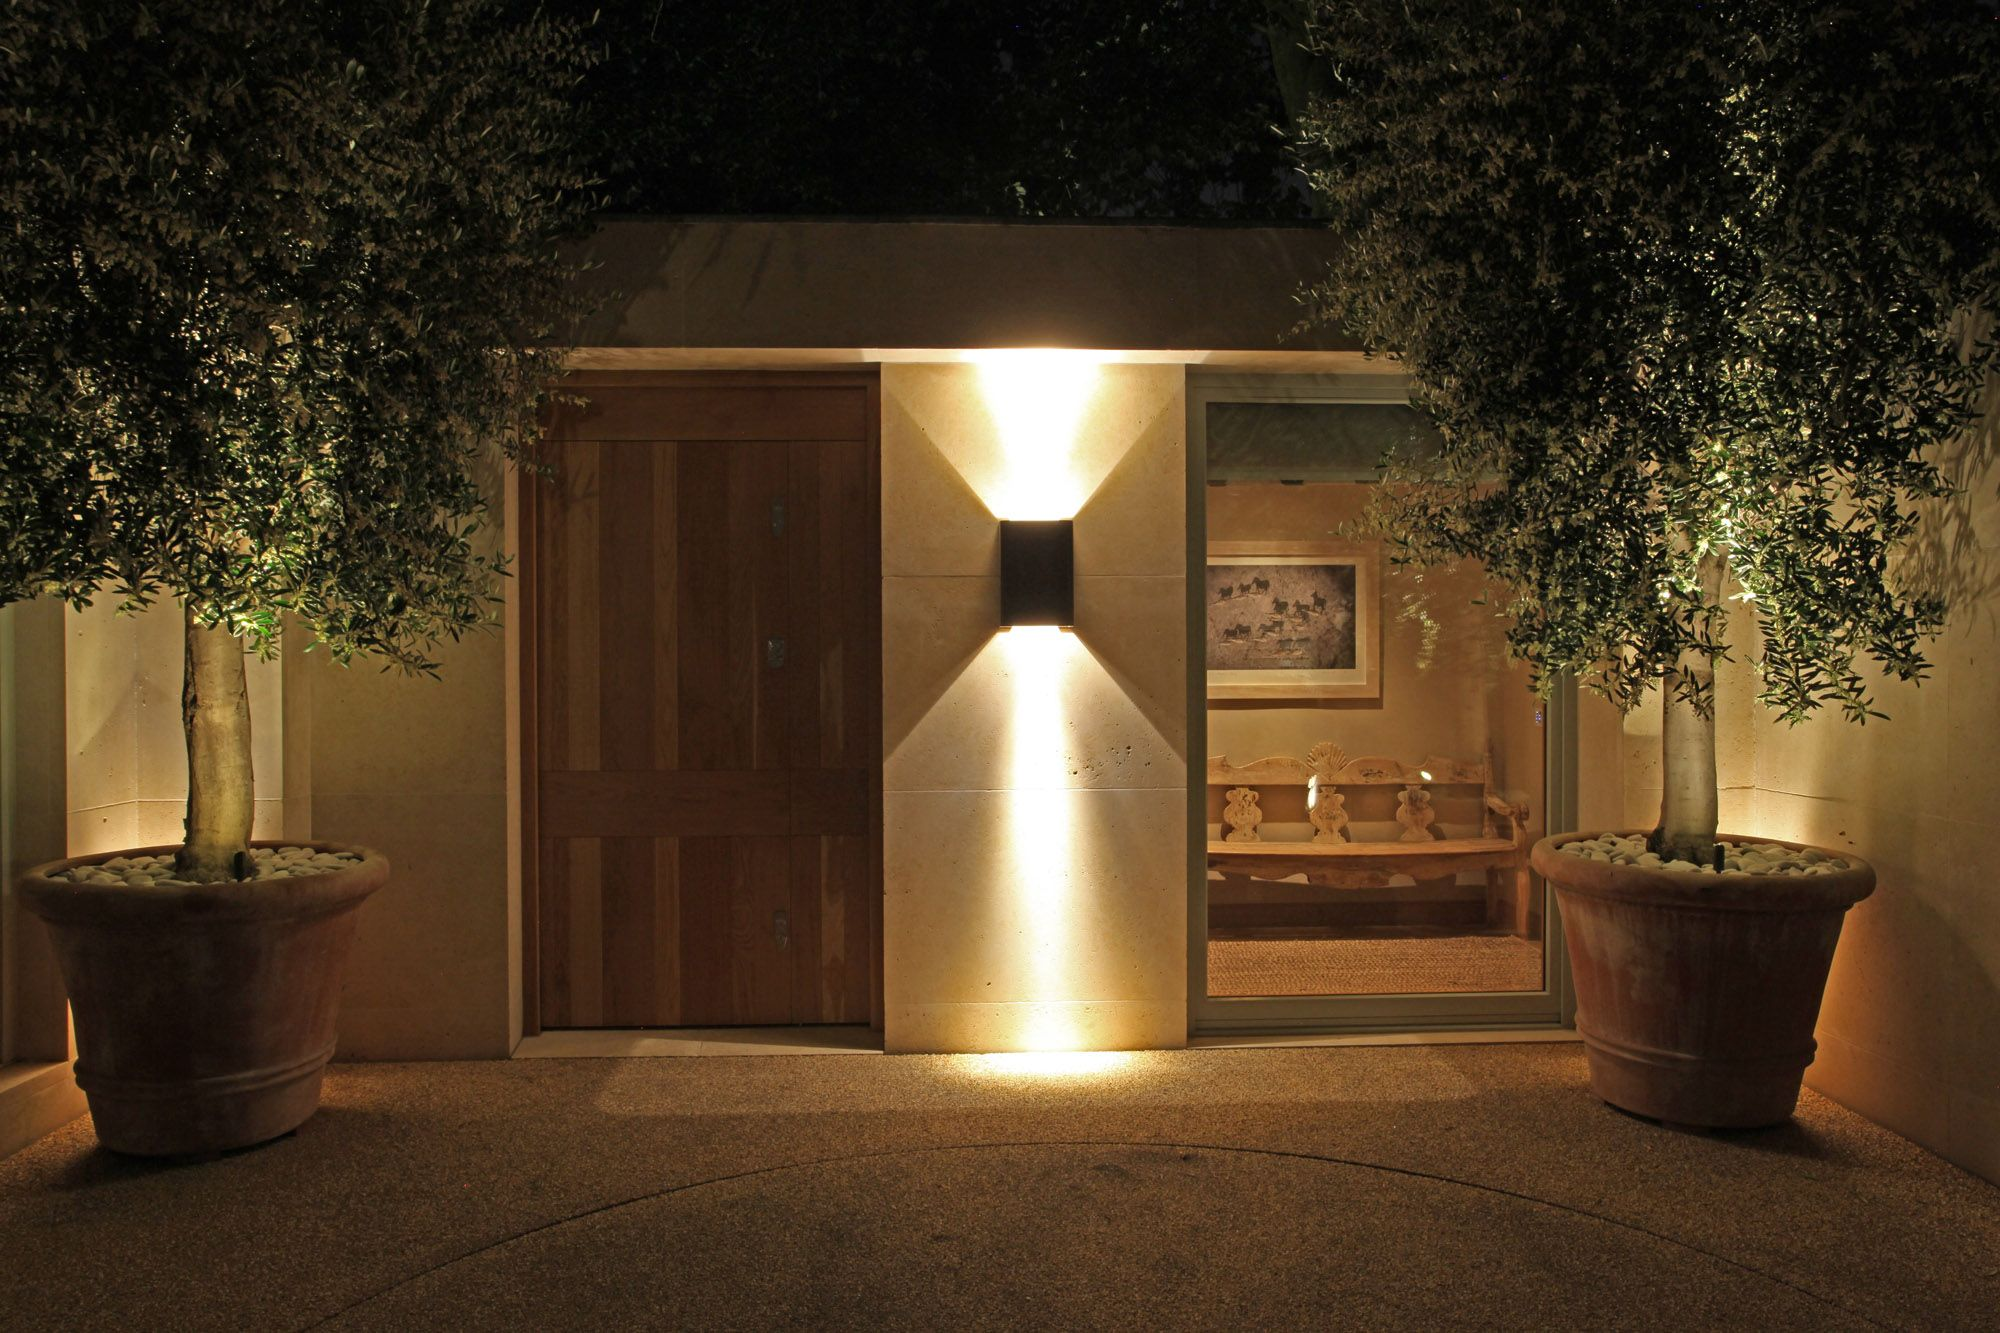 Exterior lighting 10 d hh 25 pinterest gardens lights and exterior lighting 10 aloadofball Images